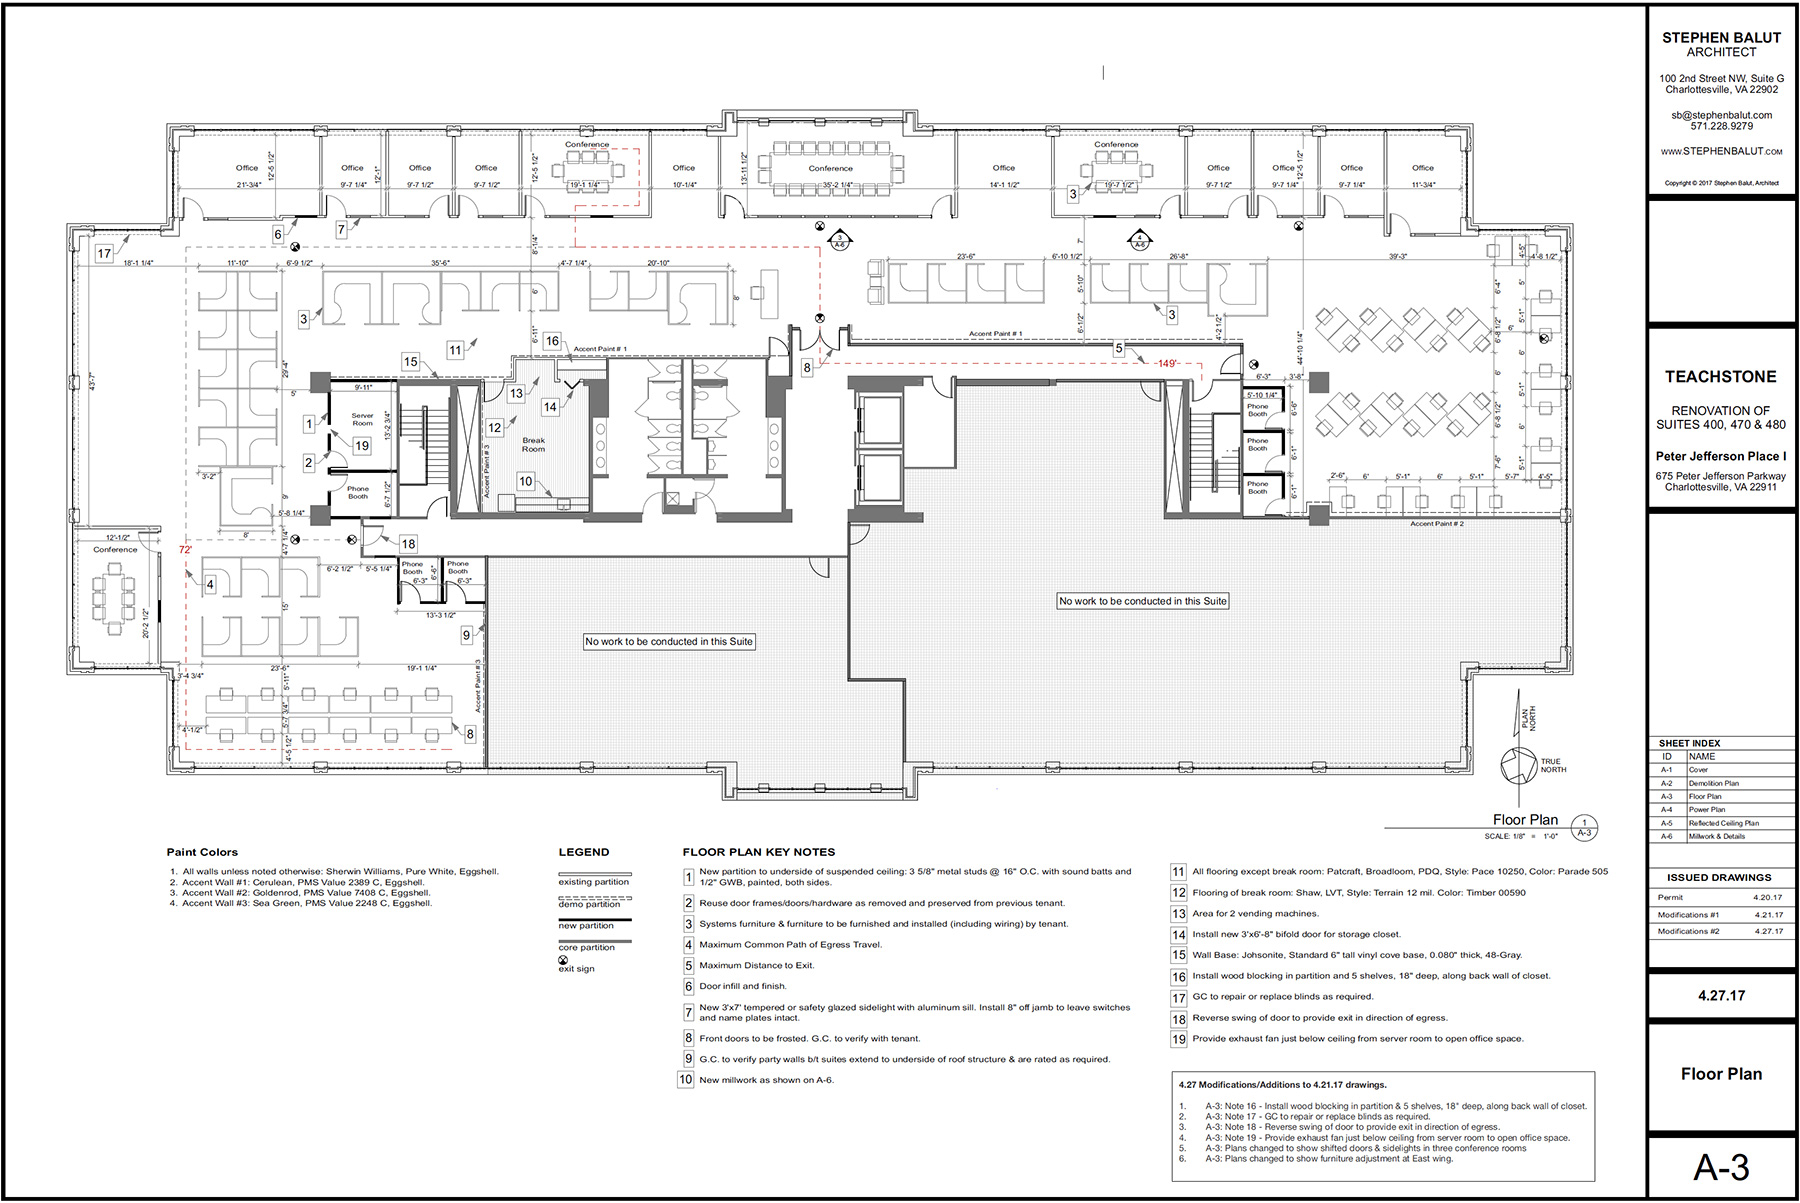 PROPOSED TEACHSTONE FLOOR PLAN